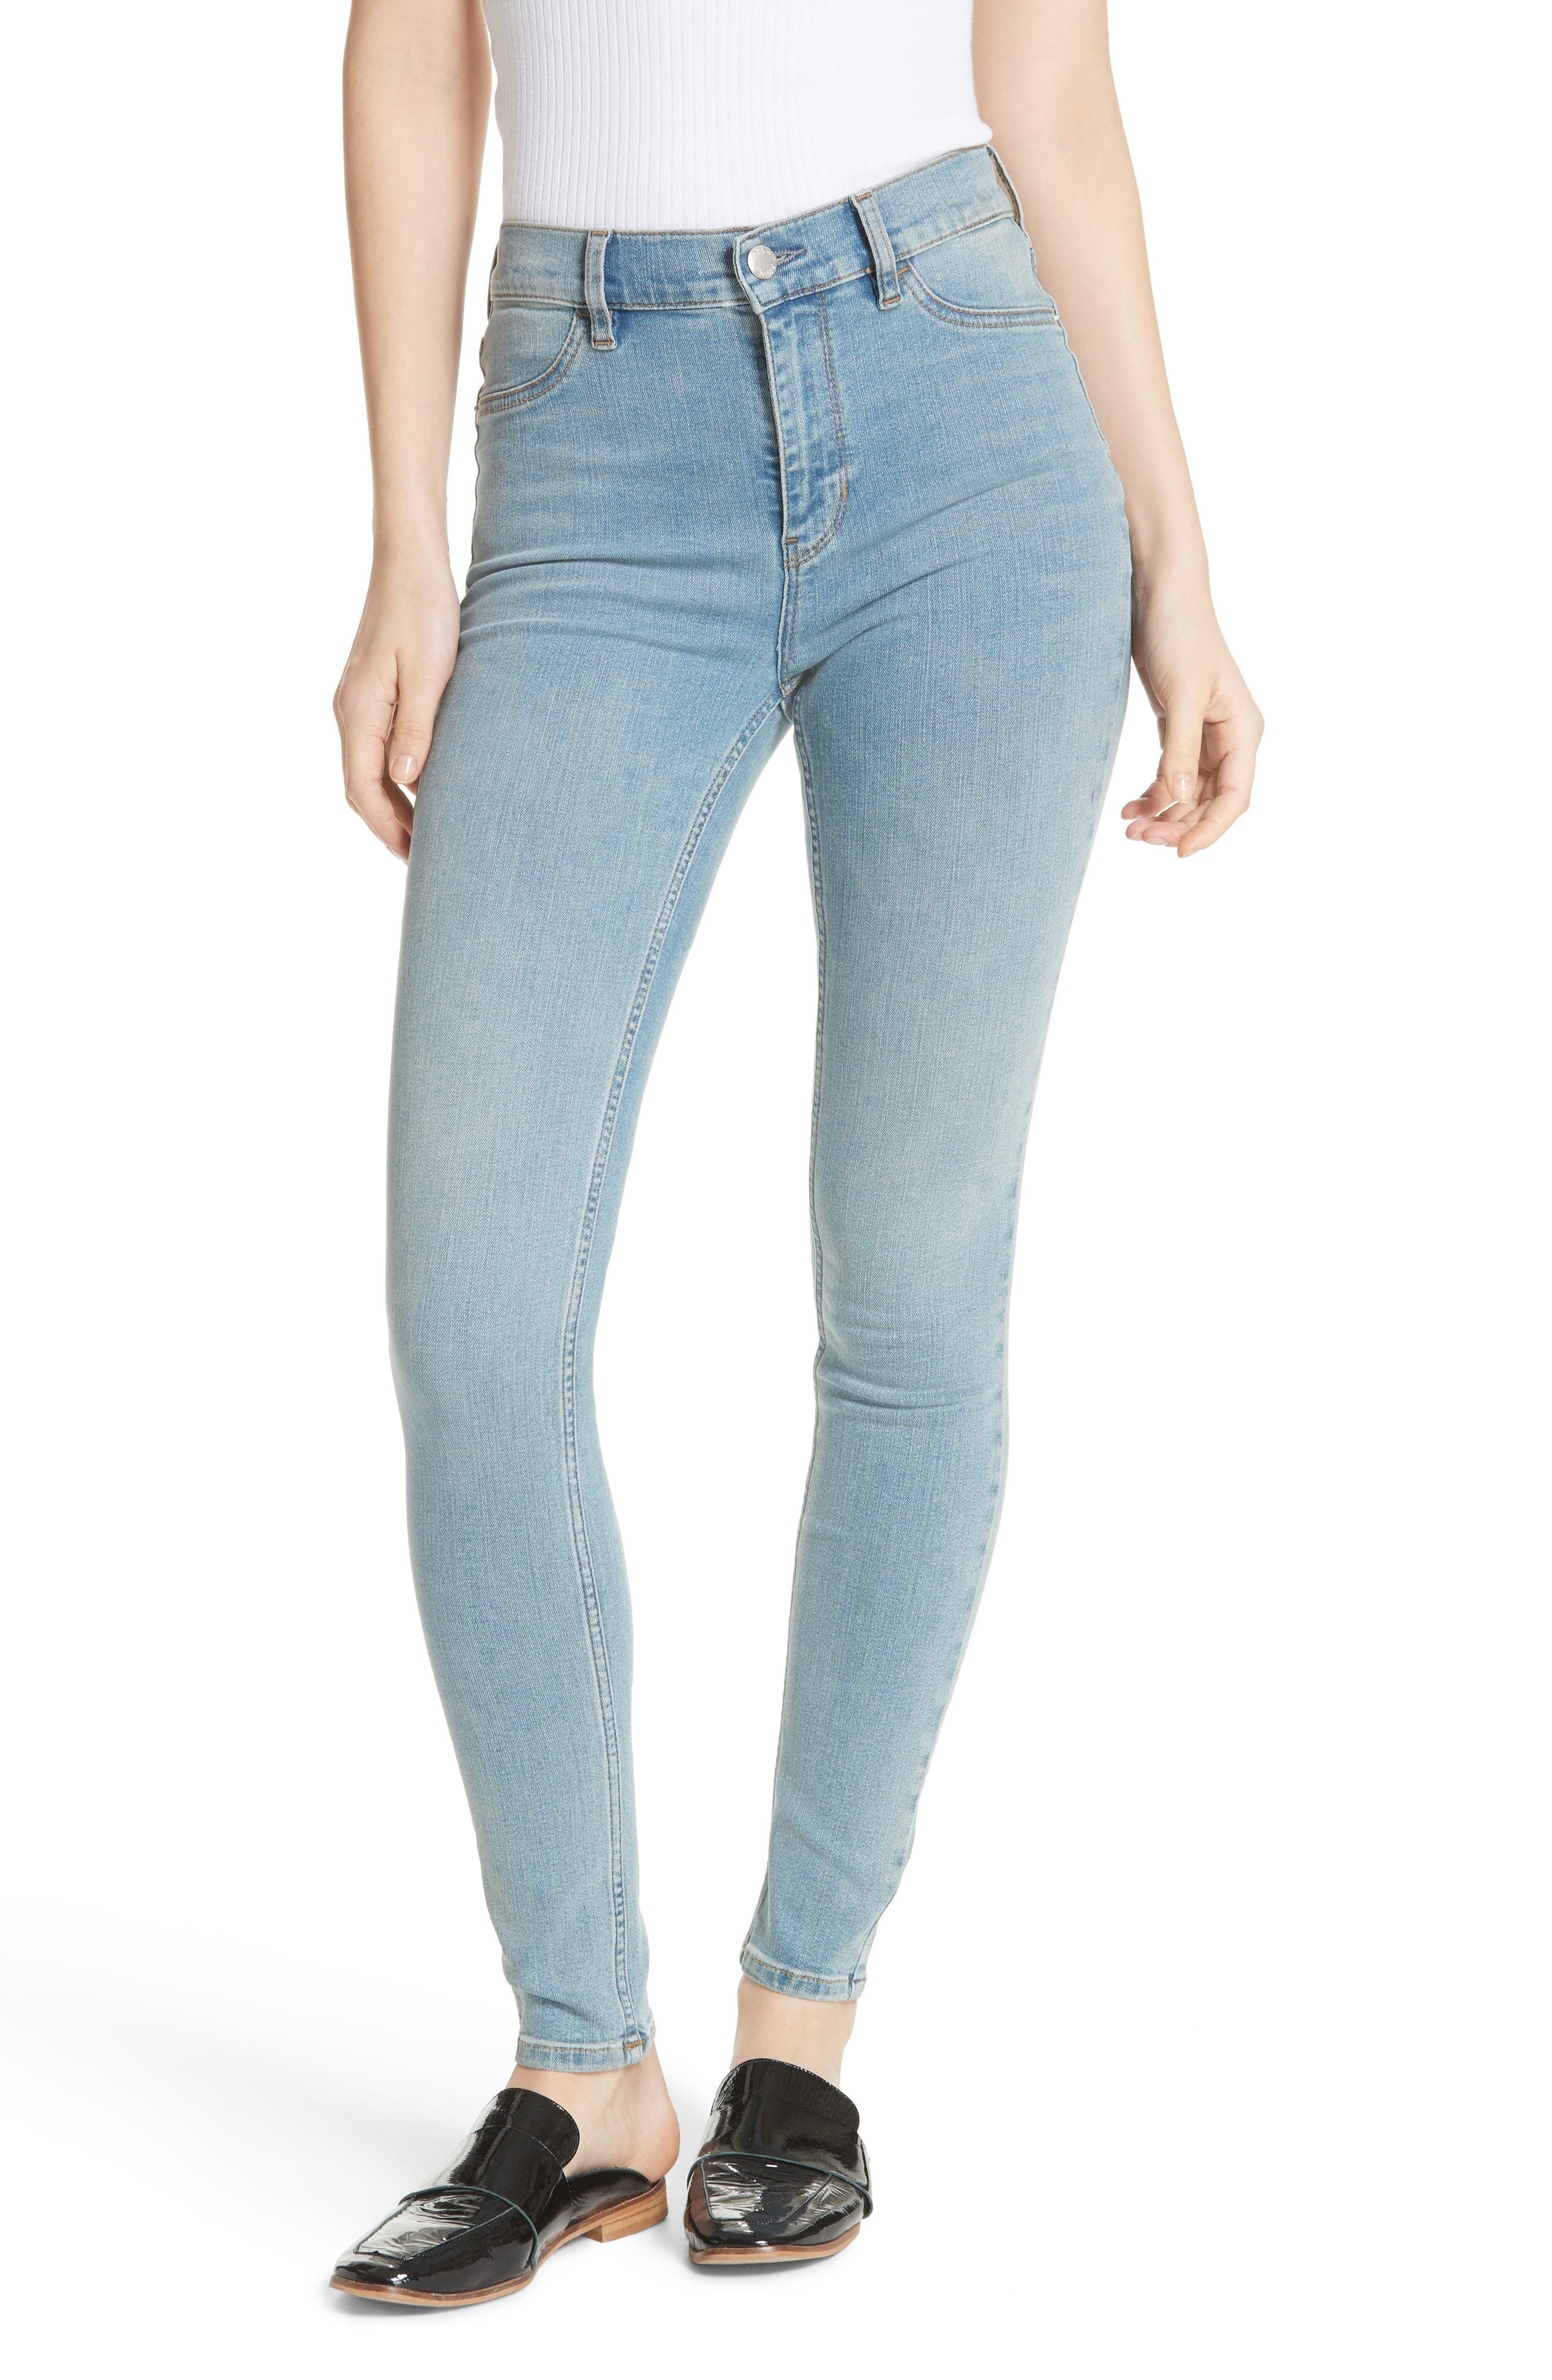 We the Free by Free People Long & Lean High Waist Denim Leggings,                             Main thumbnail 1, color,                             LIGHT DENIM